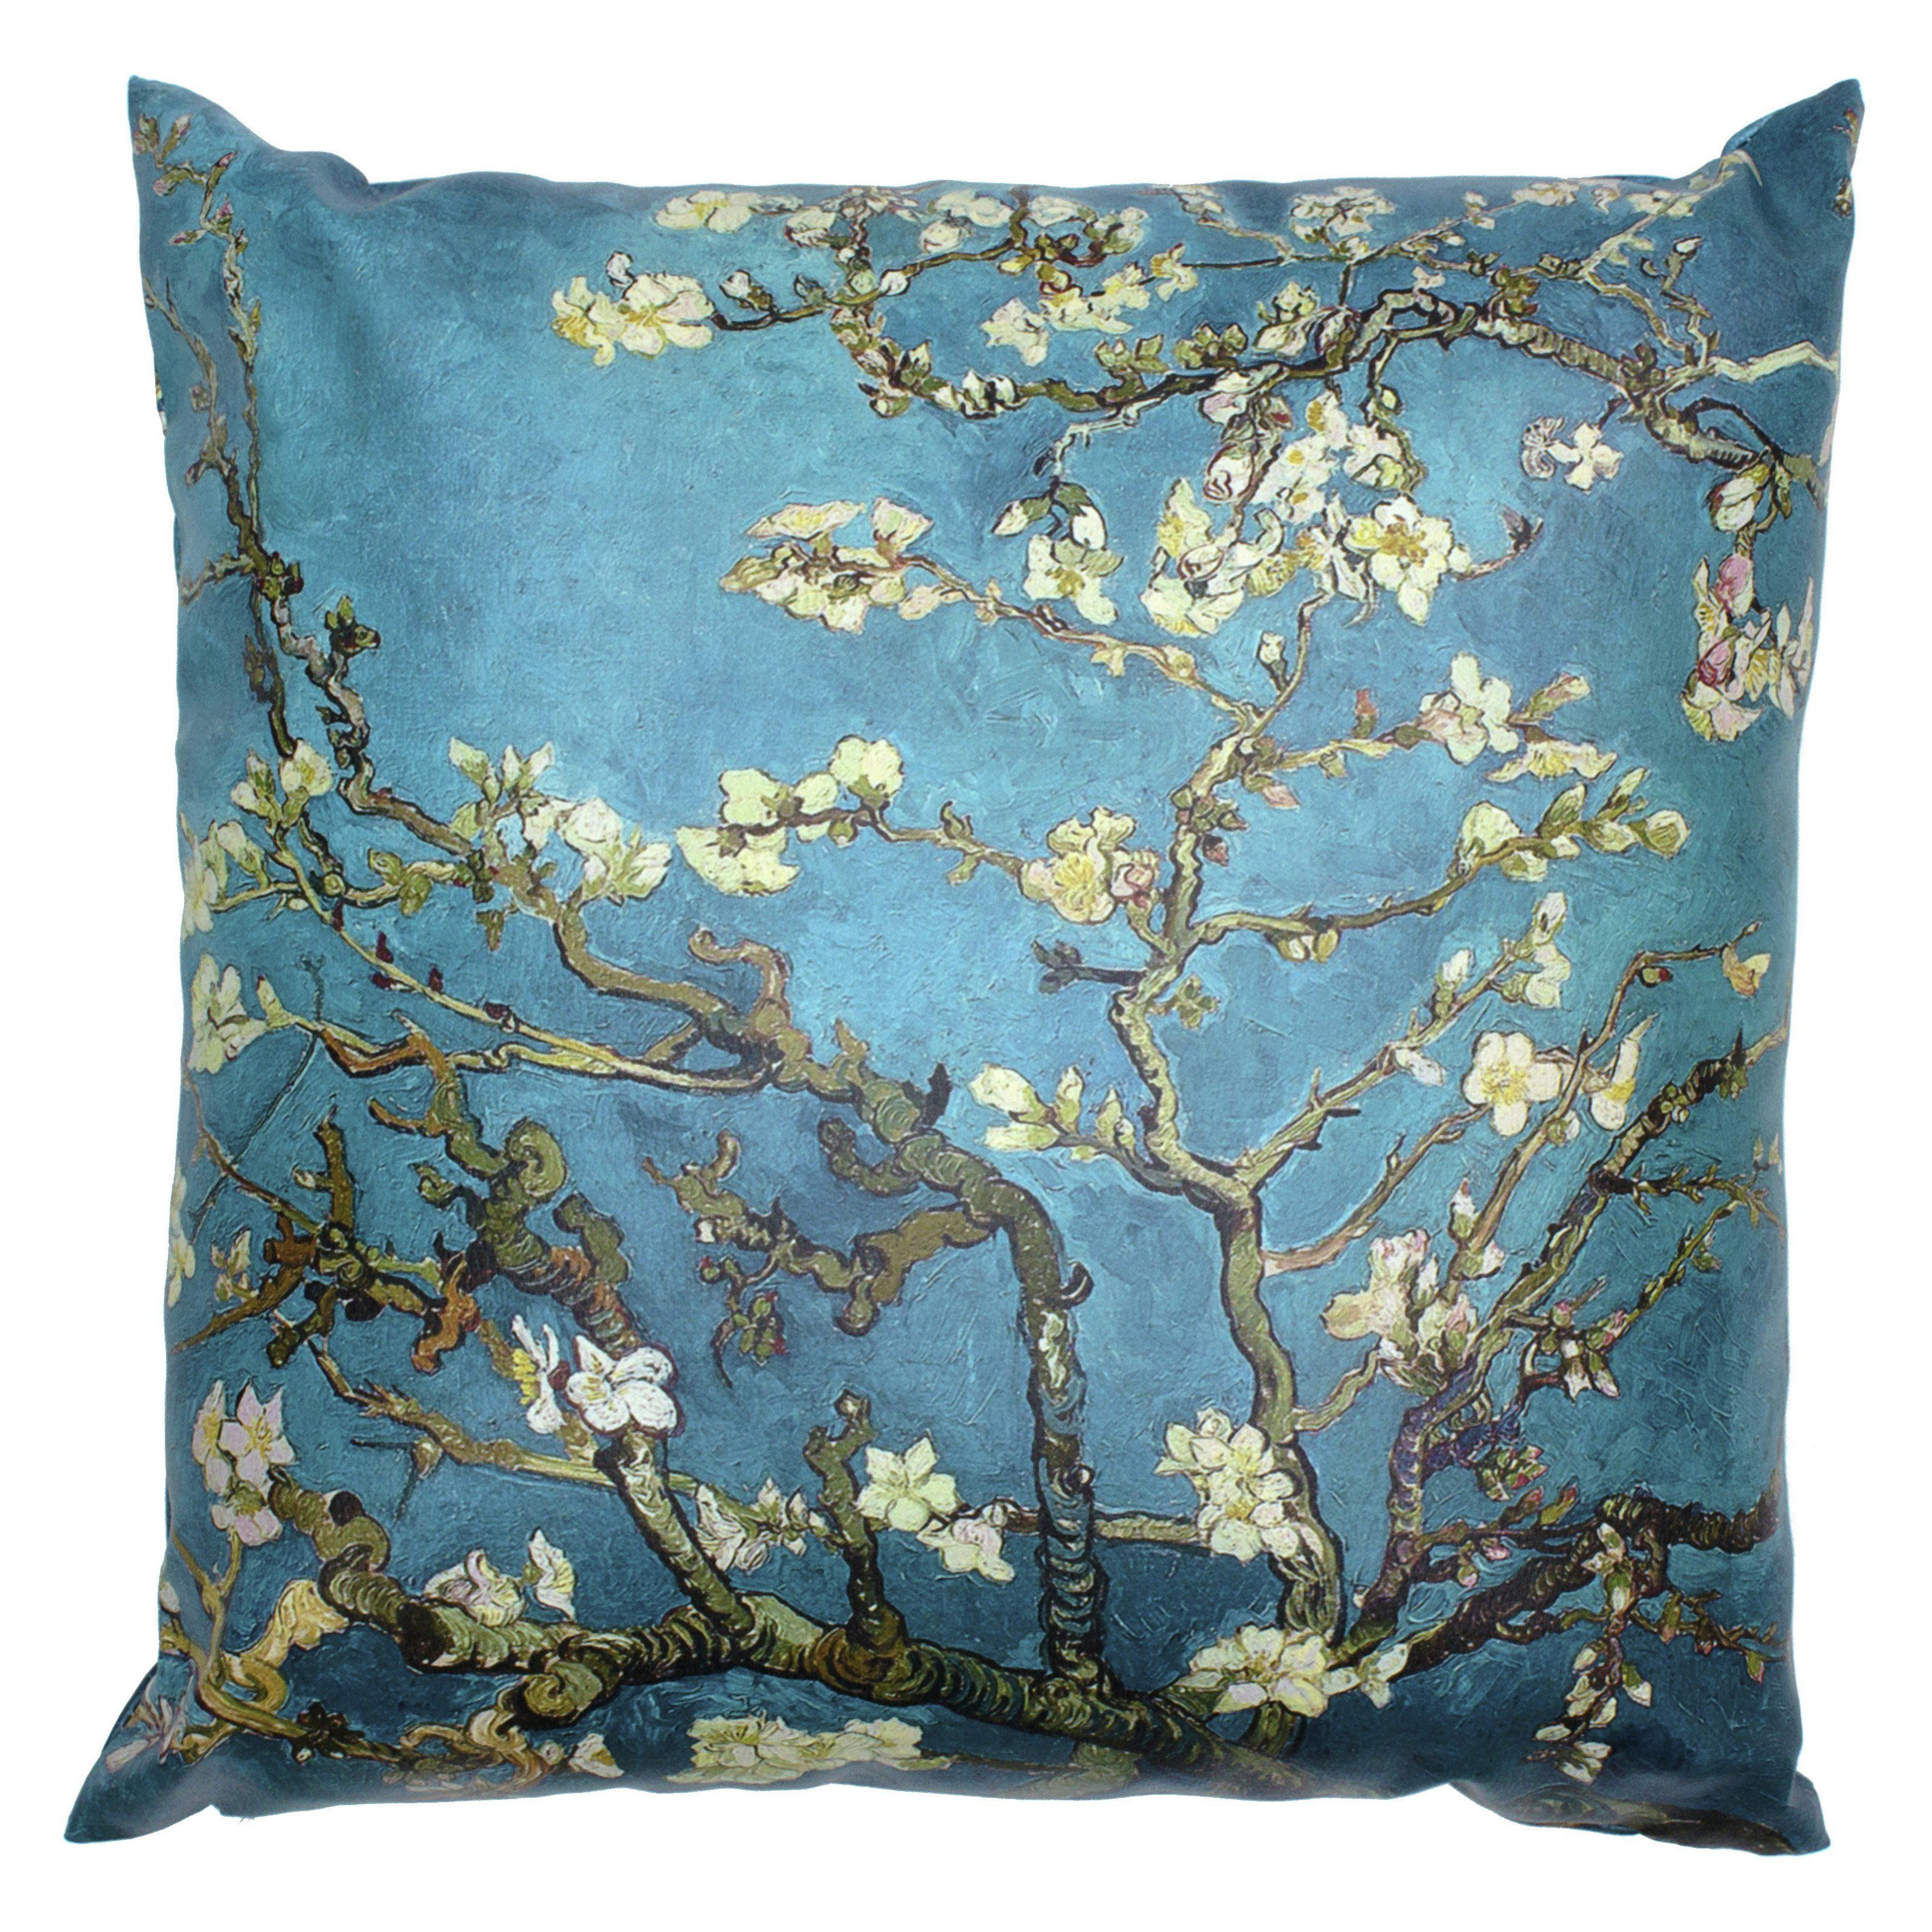 Oriental Furniture Van Gogh Almond Blossoms Decorative Pillow - CAN-PIL-VANG4-A